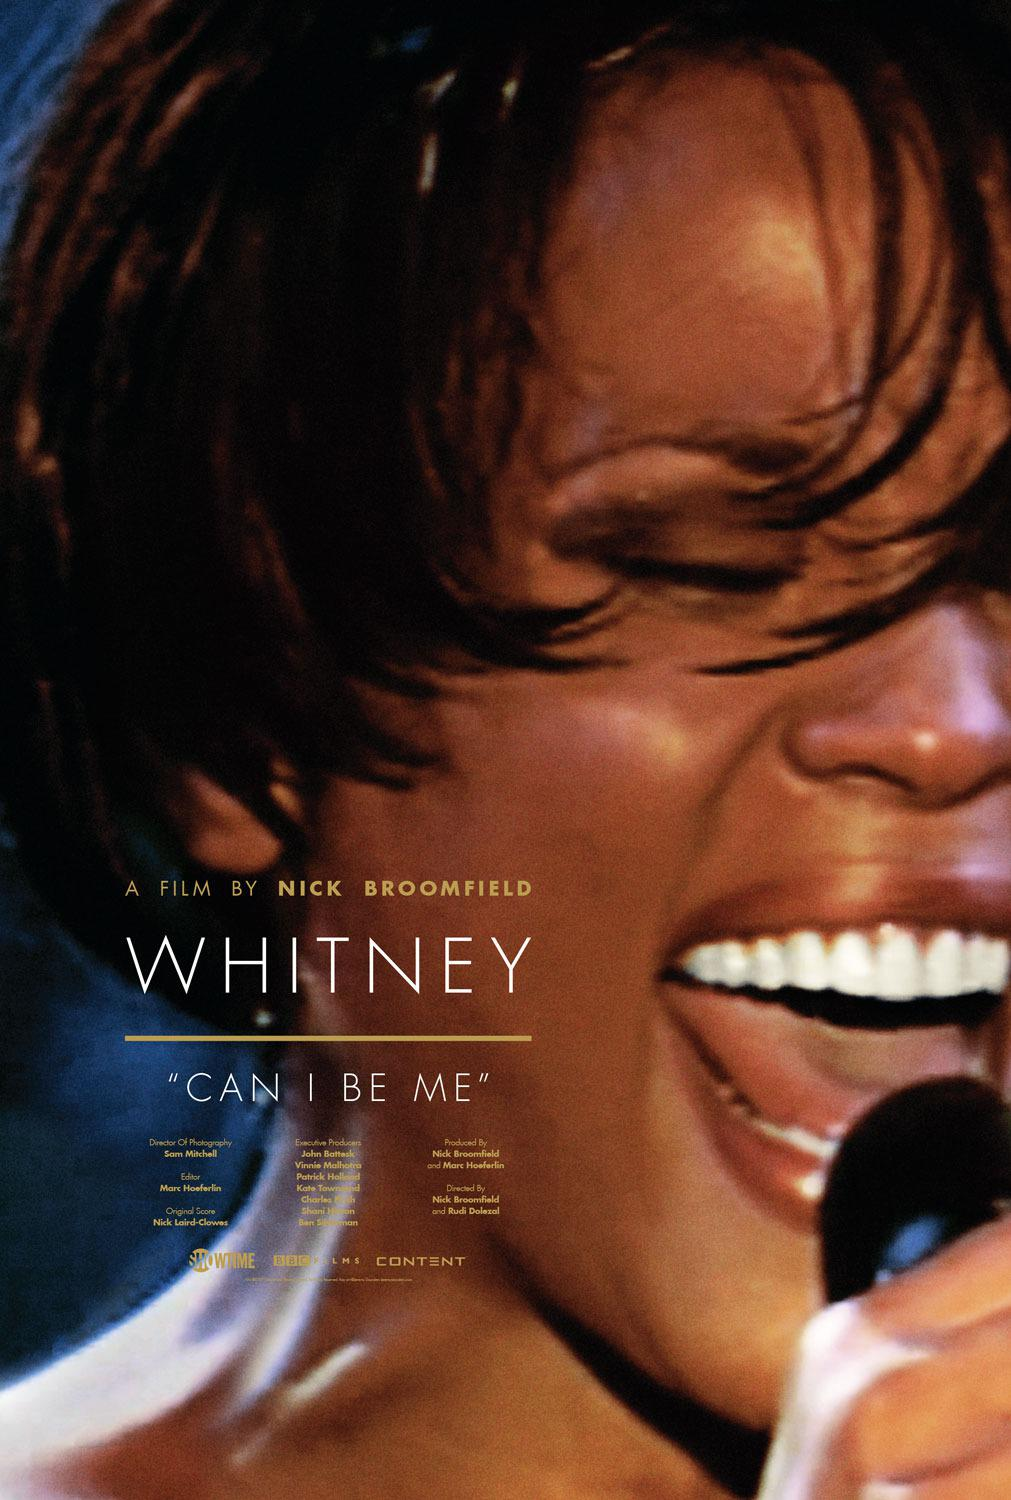 Whitney can I be me (life of Whitney Houston)  - film poster